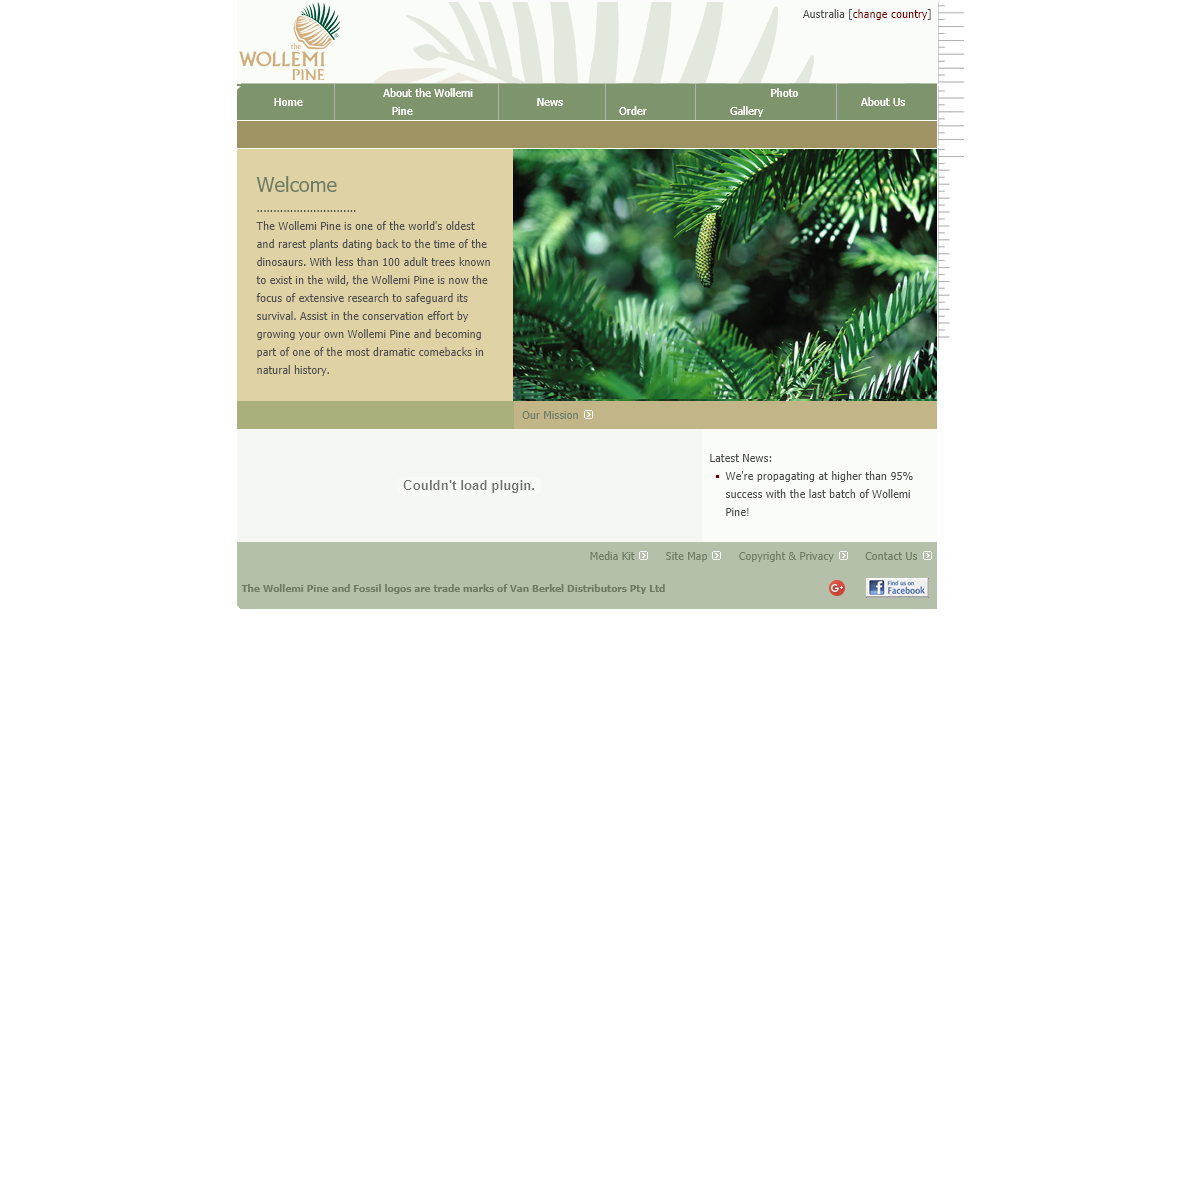 WollemiPine.com - the official home of the Wollemi Pine.